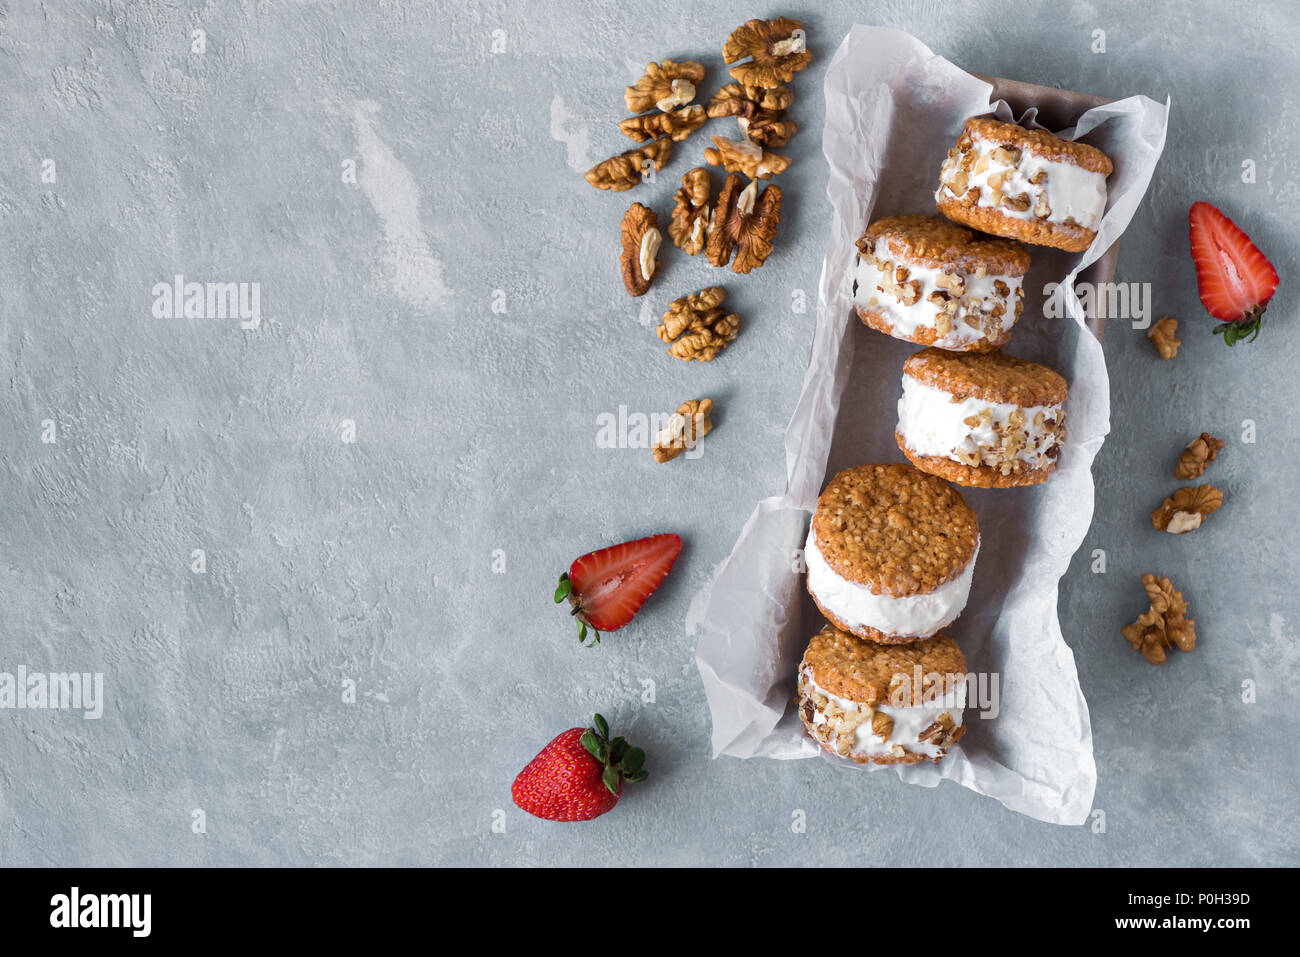 Ice cream sandwiches with nuts and wholegrain cookies. Homemade vanilla ice cream sandwiches on gray concrete background. Stock Photo